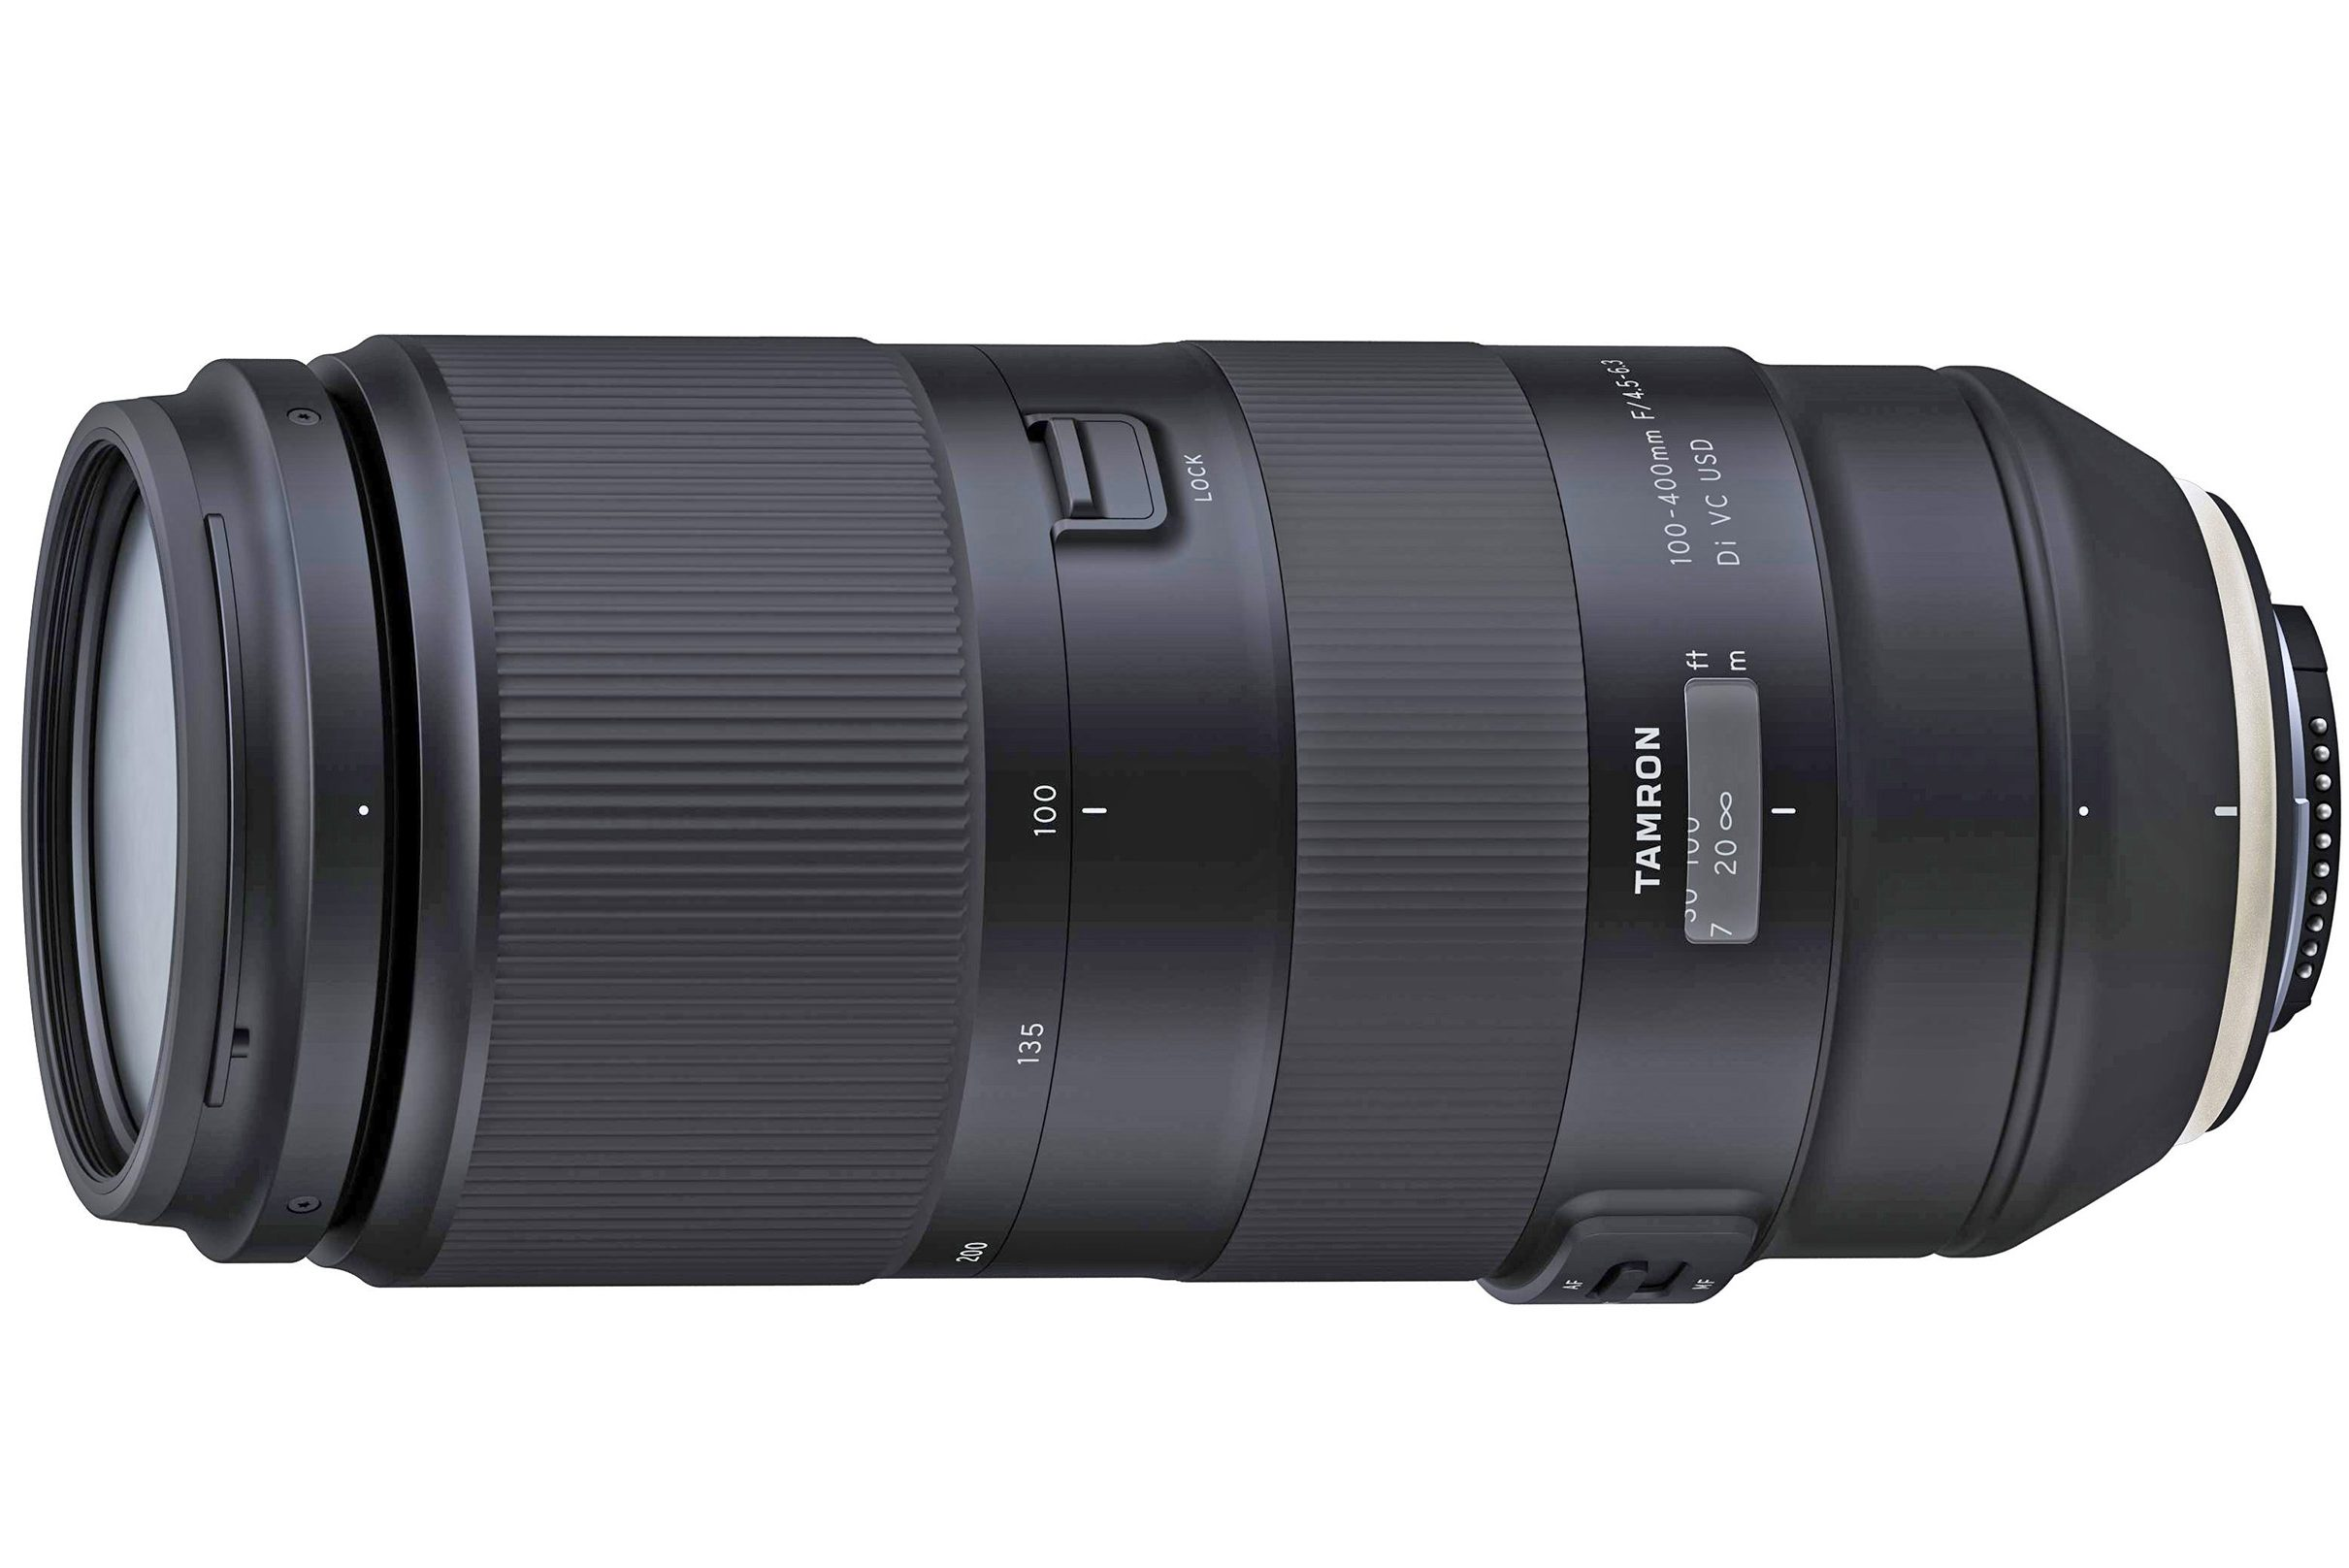 Tamron 100-400mm f/4.5-6.3: New zoom for full-frame DSLRs launched